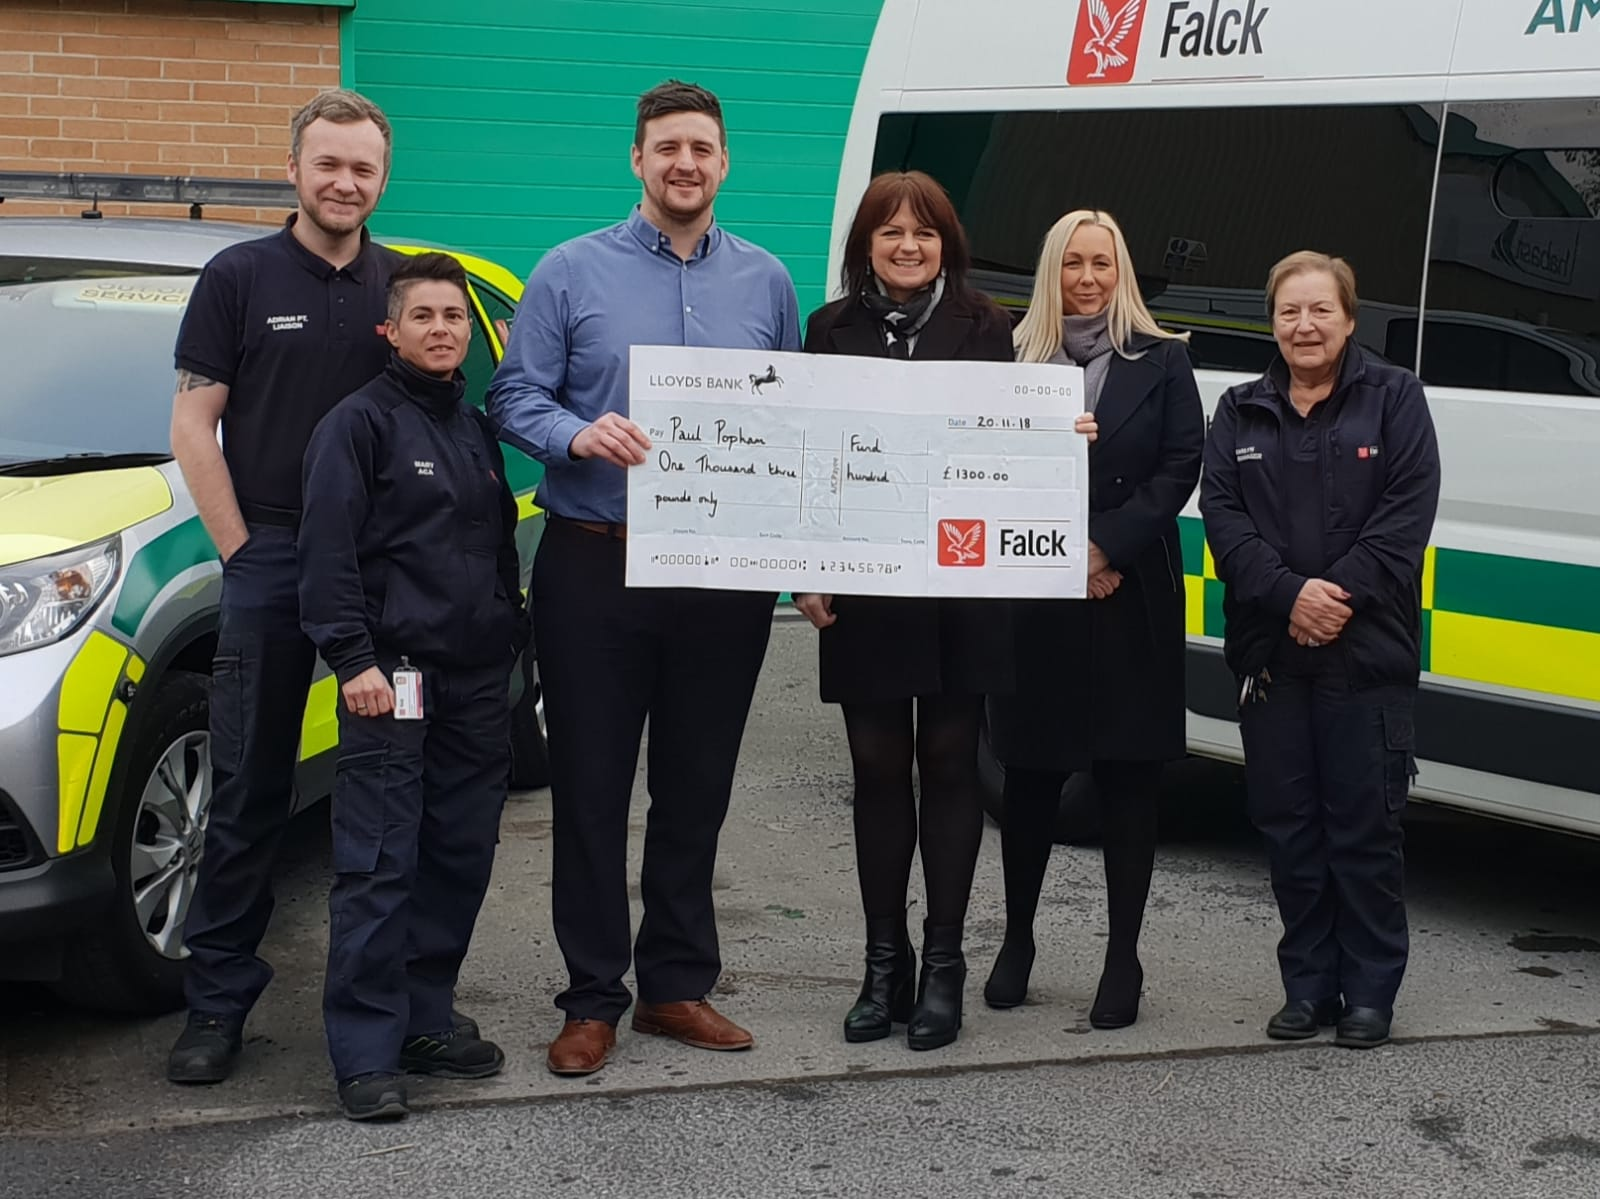 Falck Raises £1300 To Support The Paul Popham Fund / Renal Support Wales